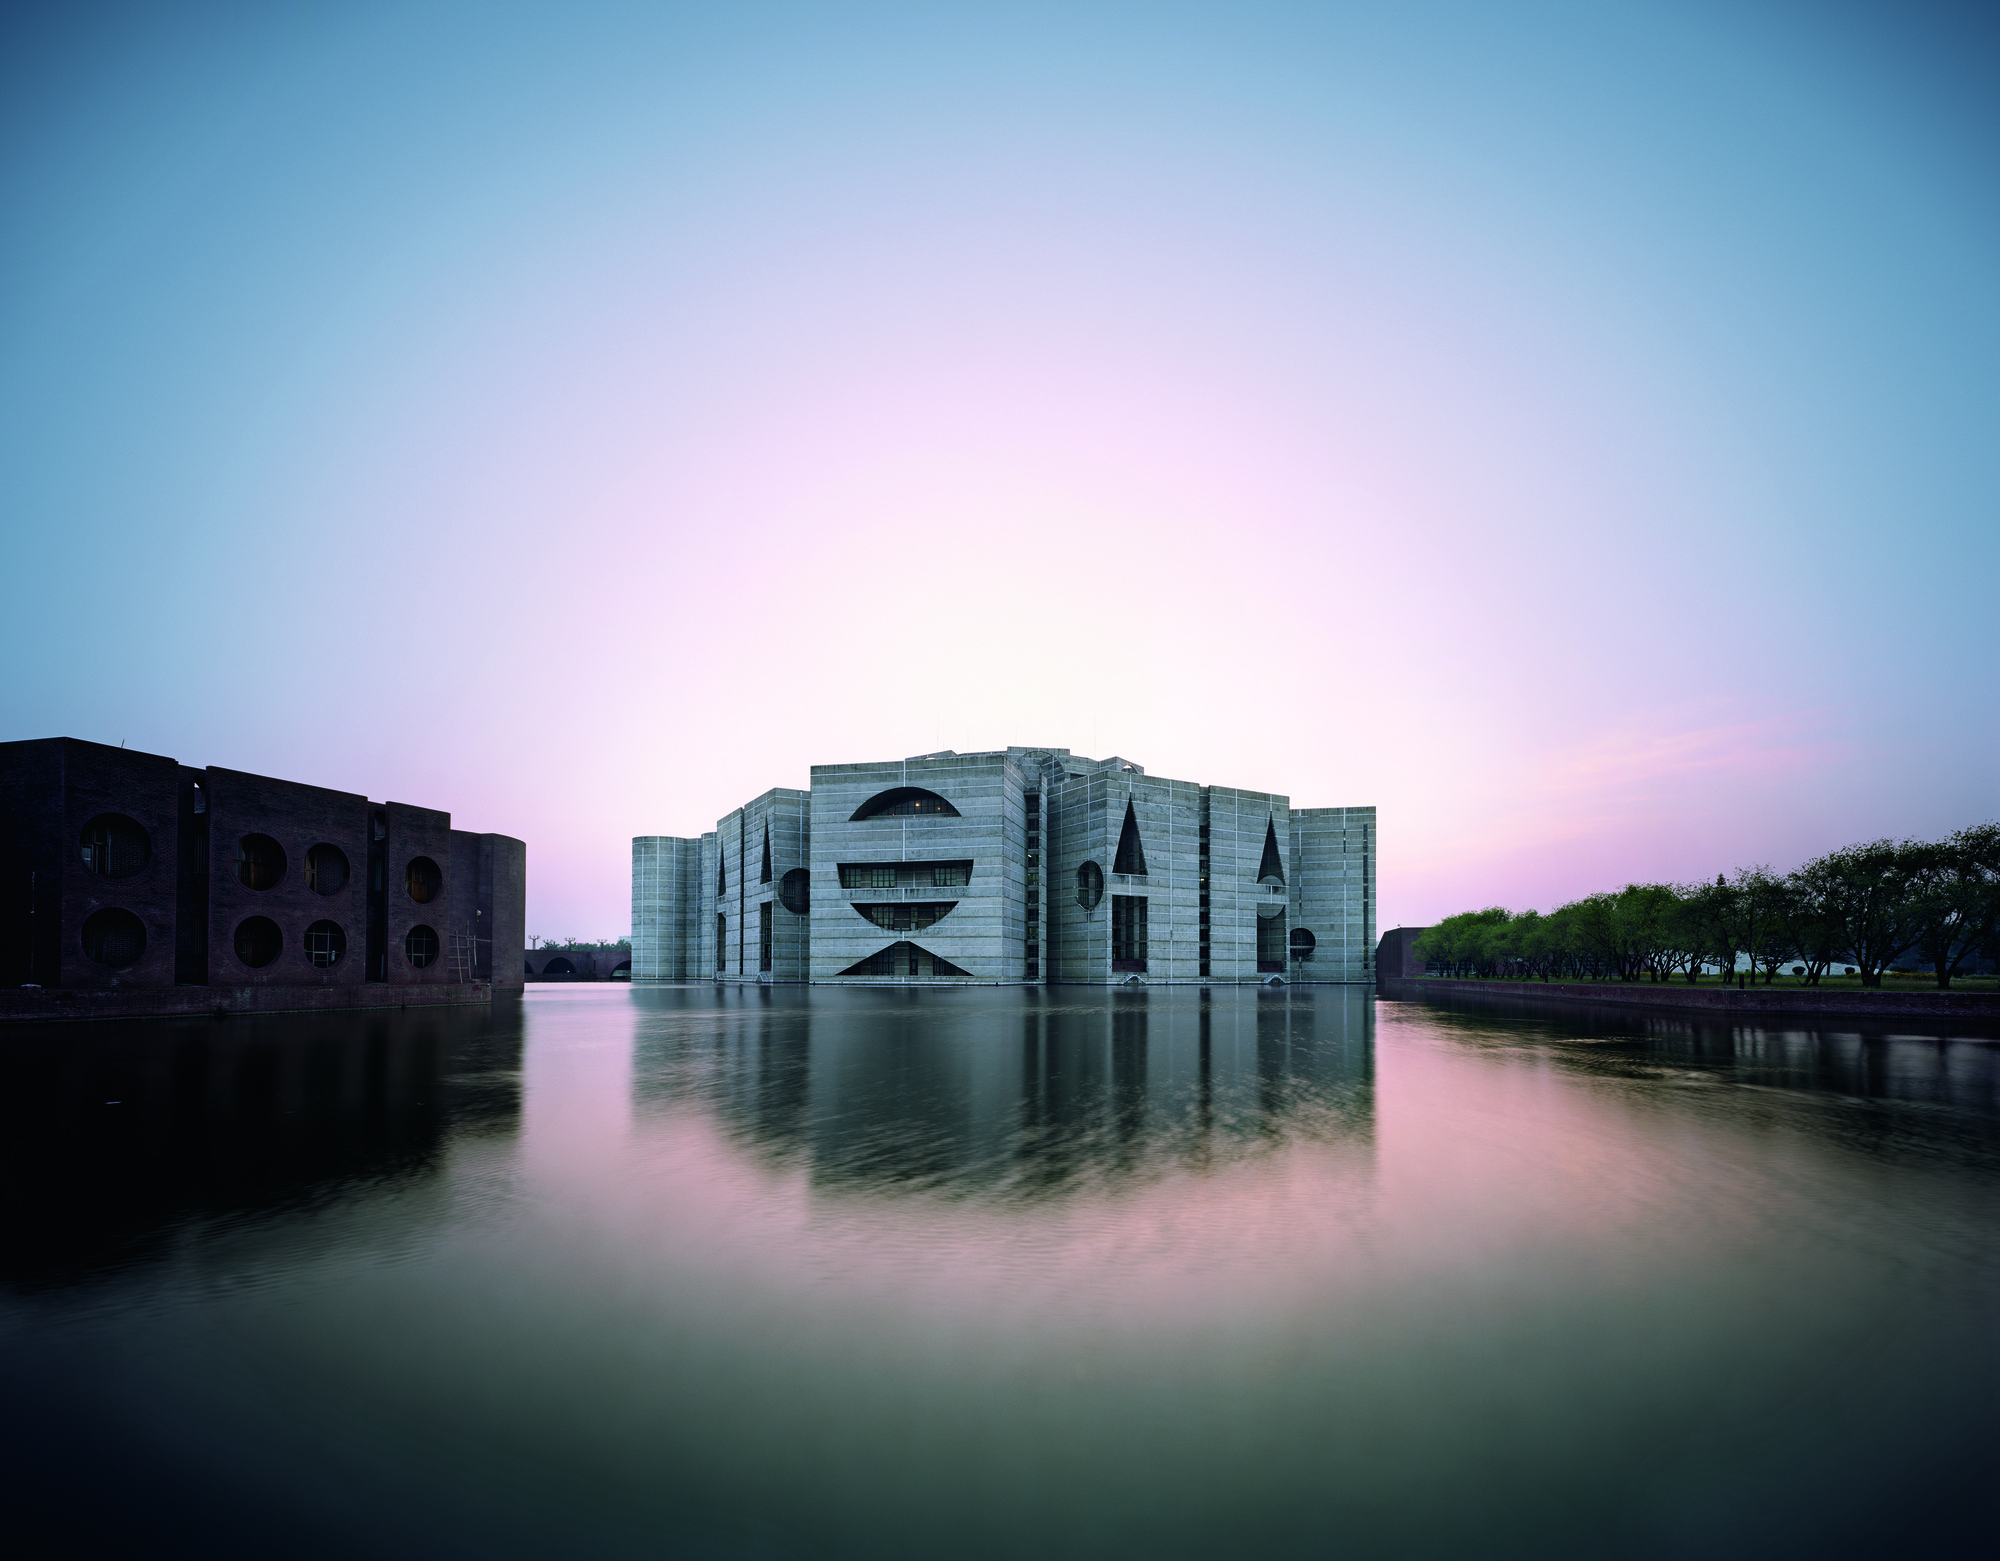 Louis kahn the power of architecture archdaily for Louis kahn buildings